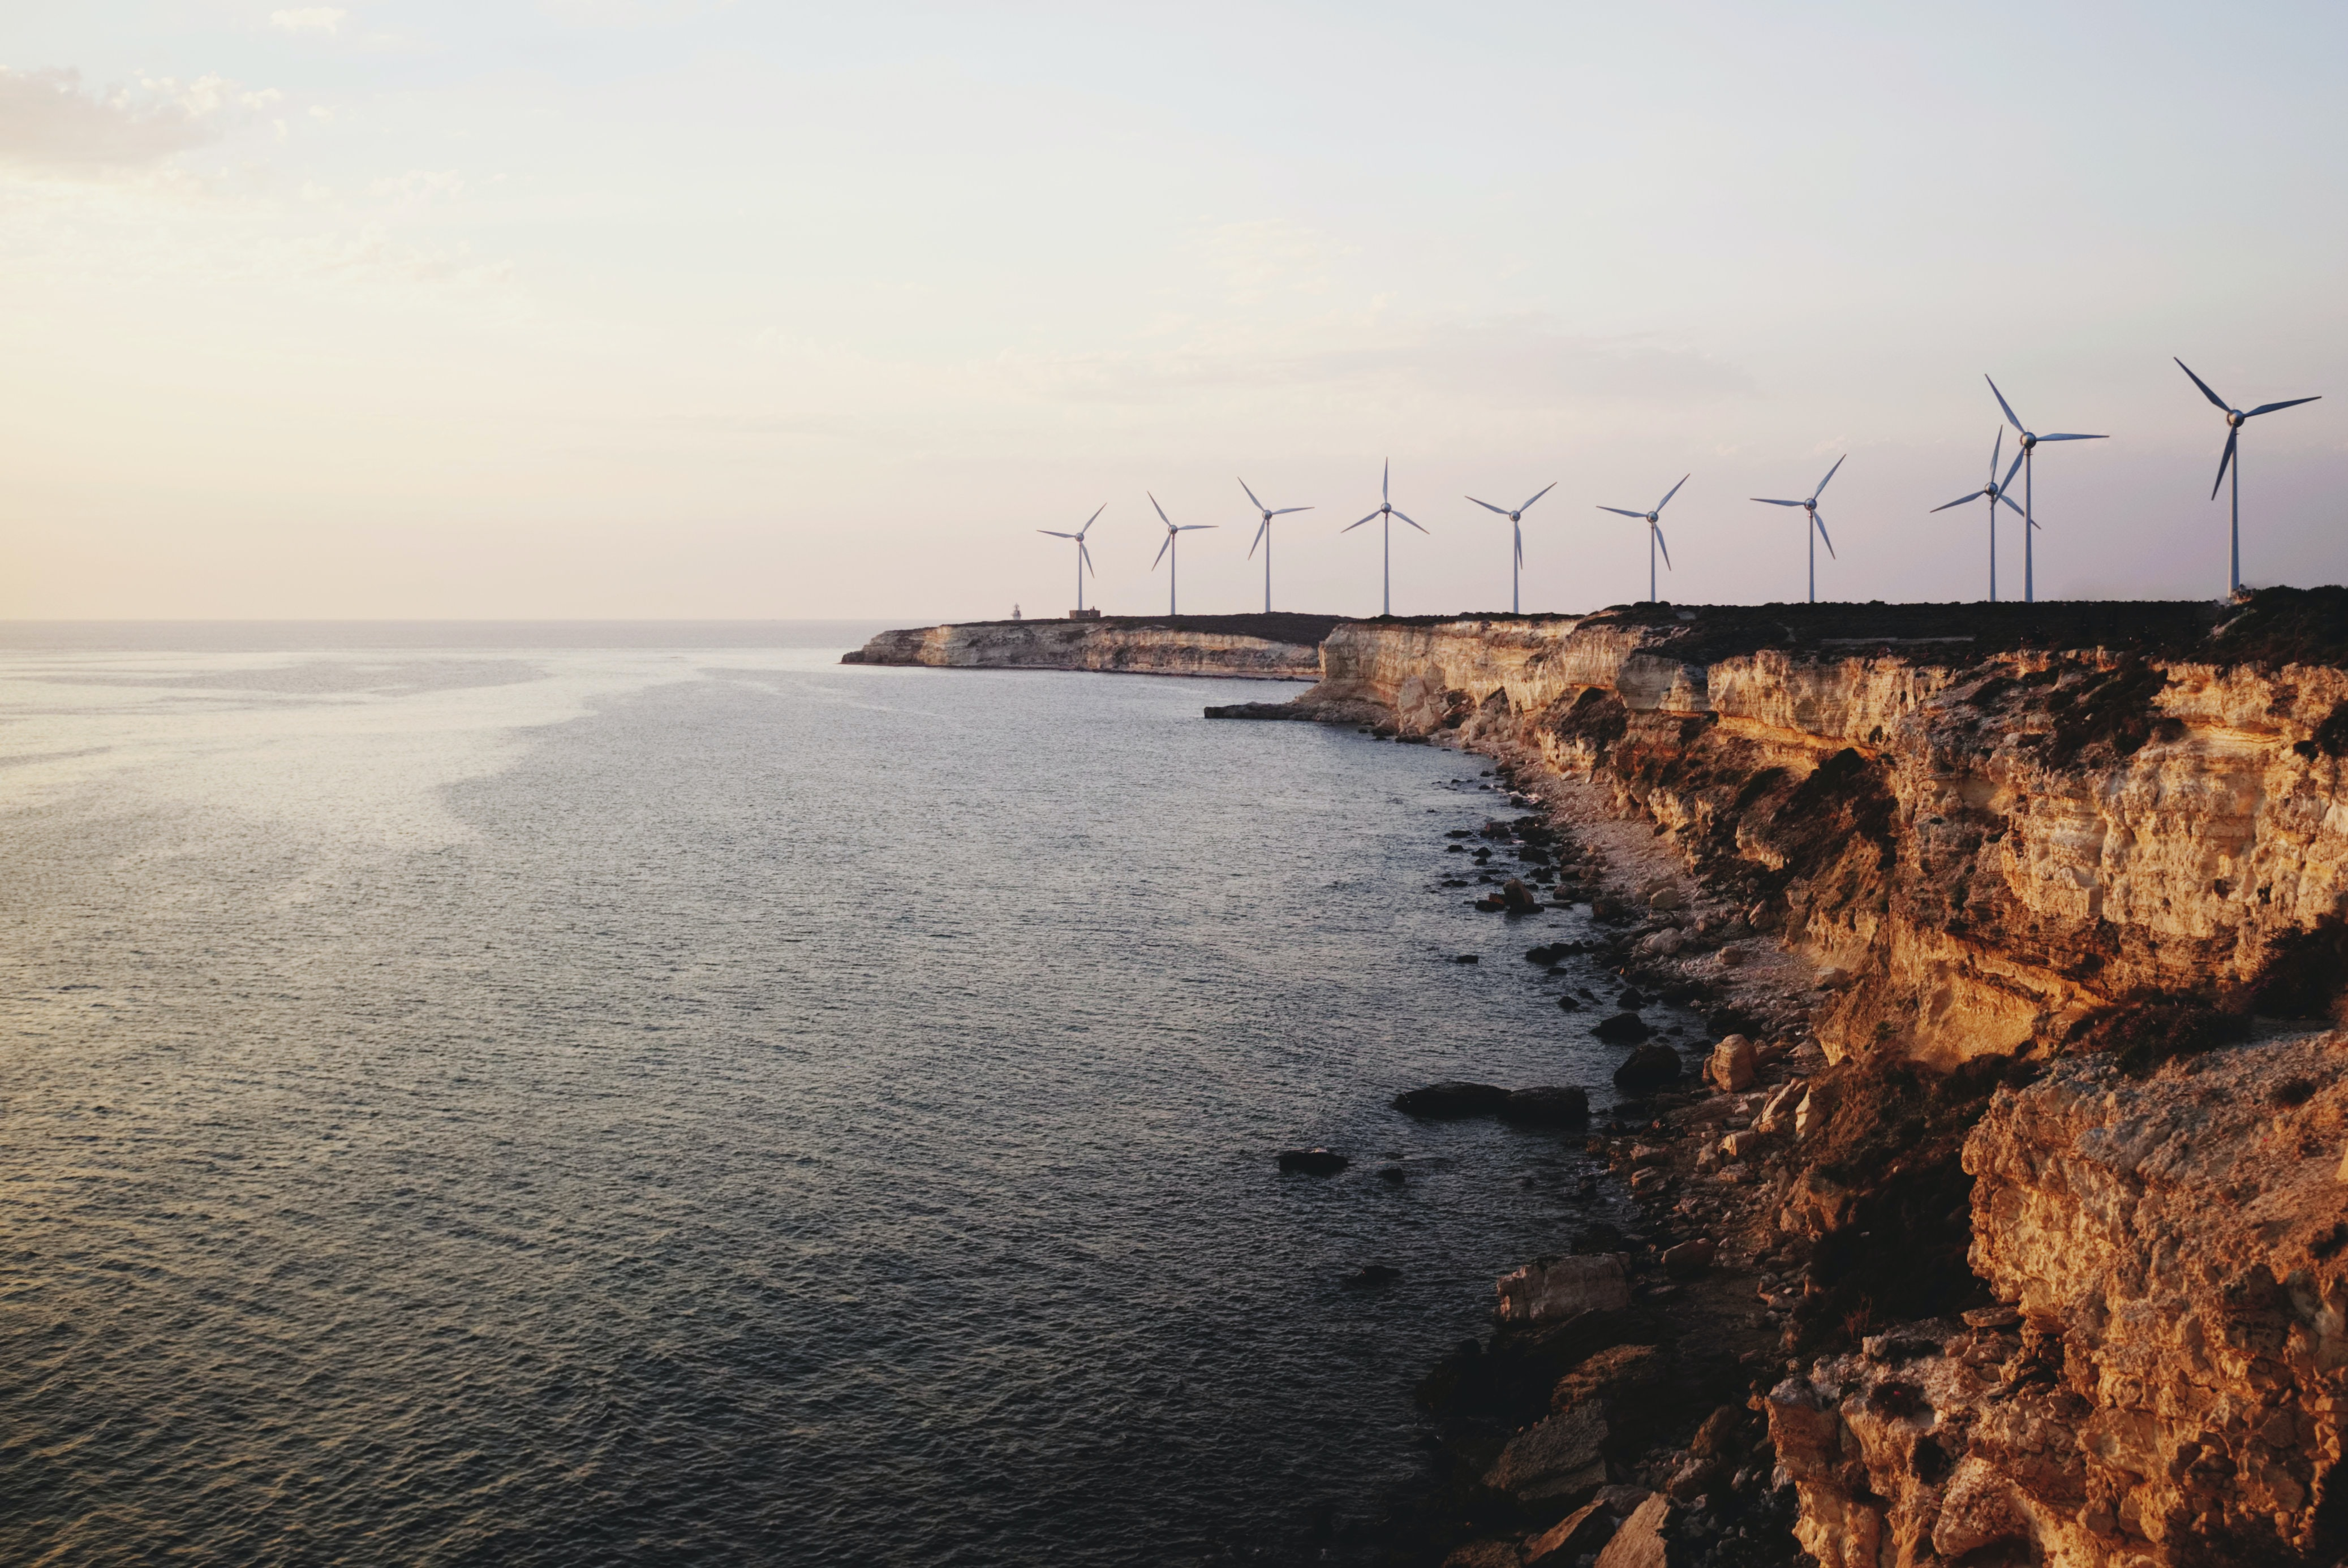 windmill near body of water during daytime